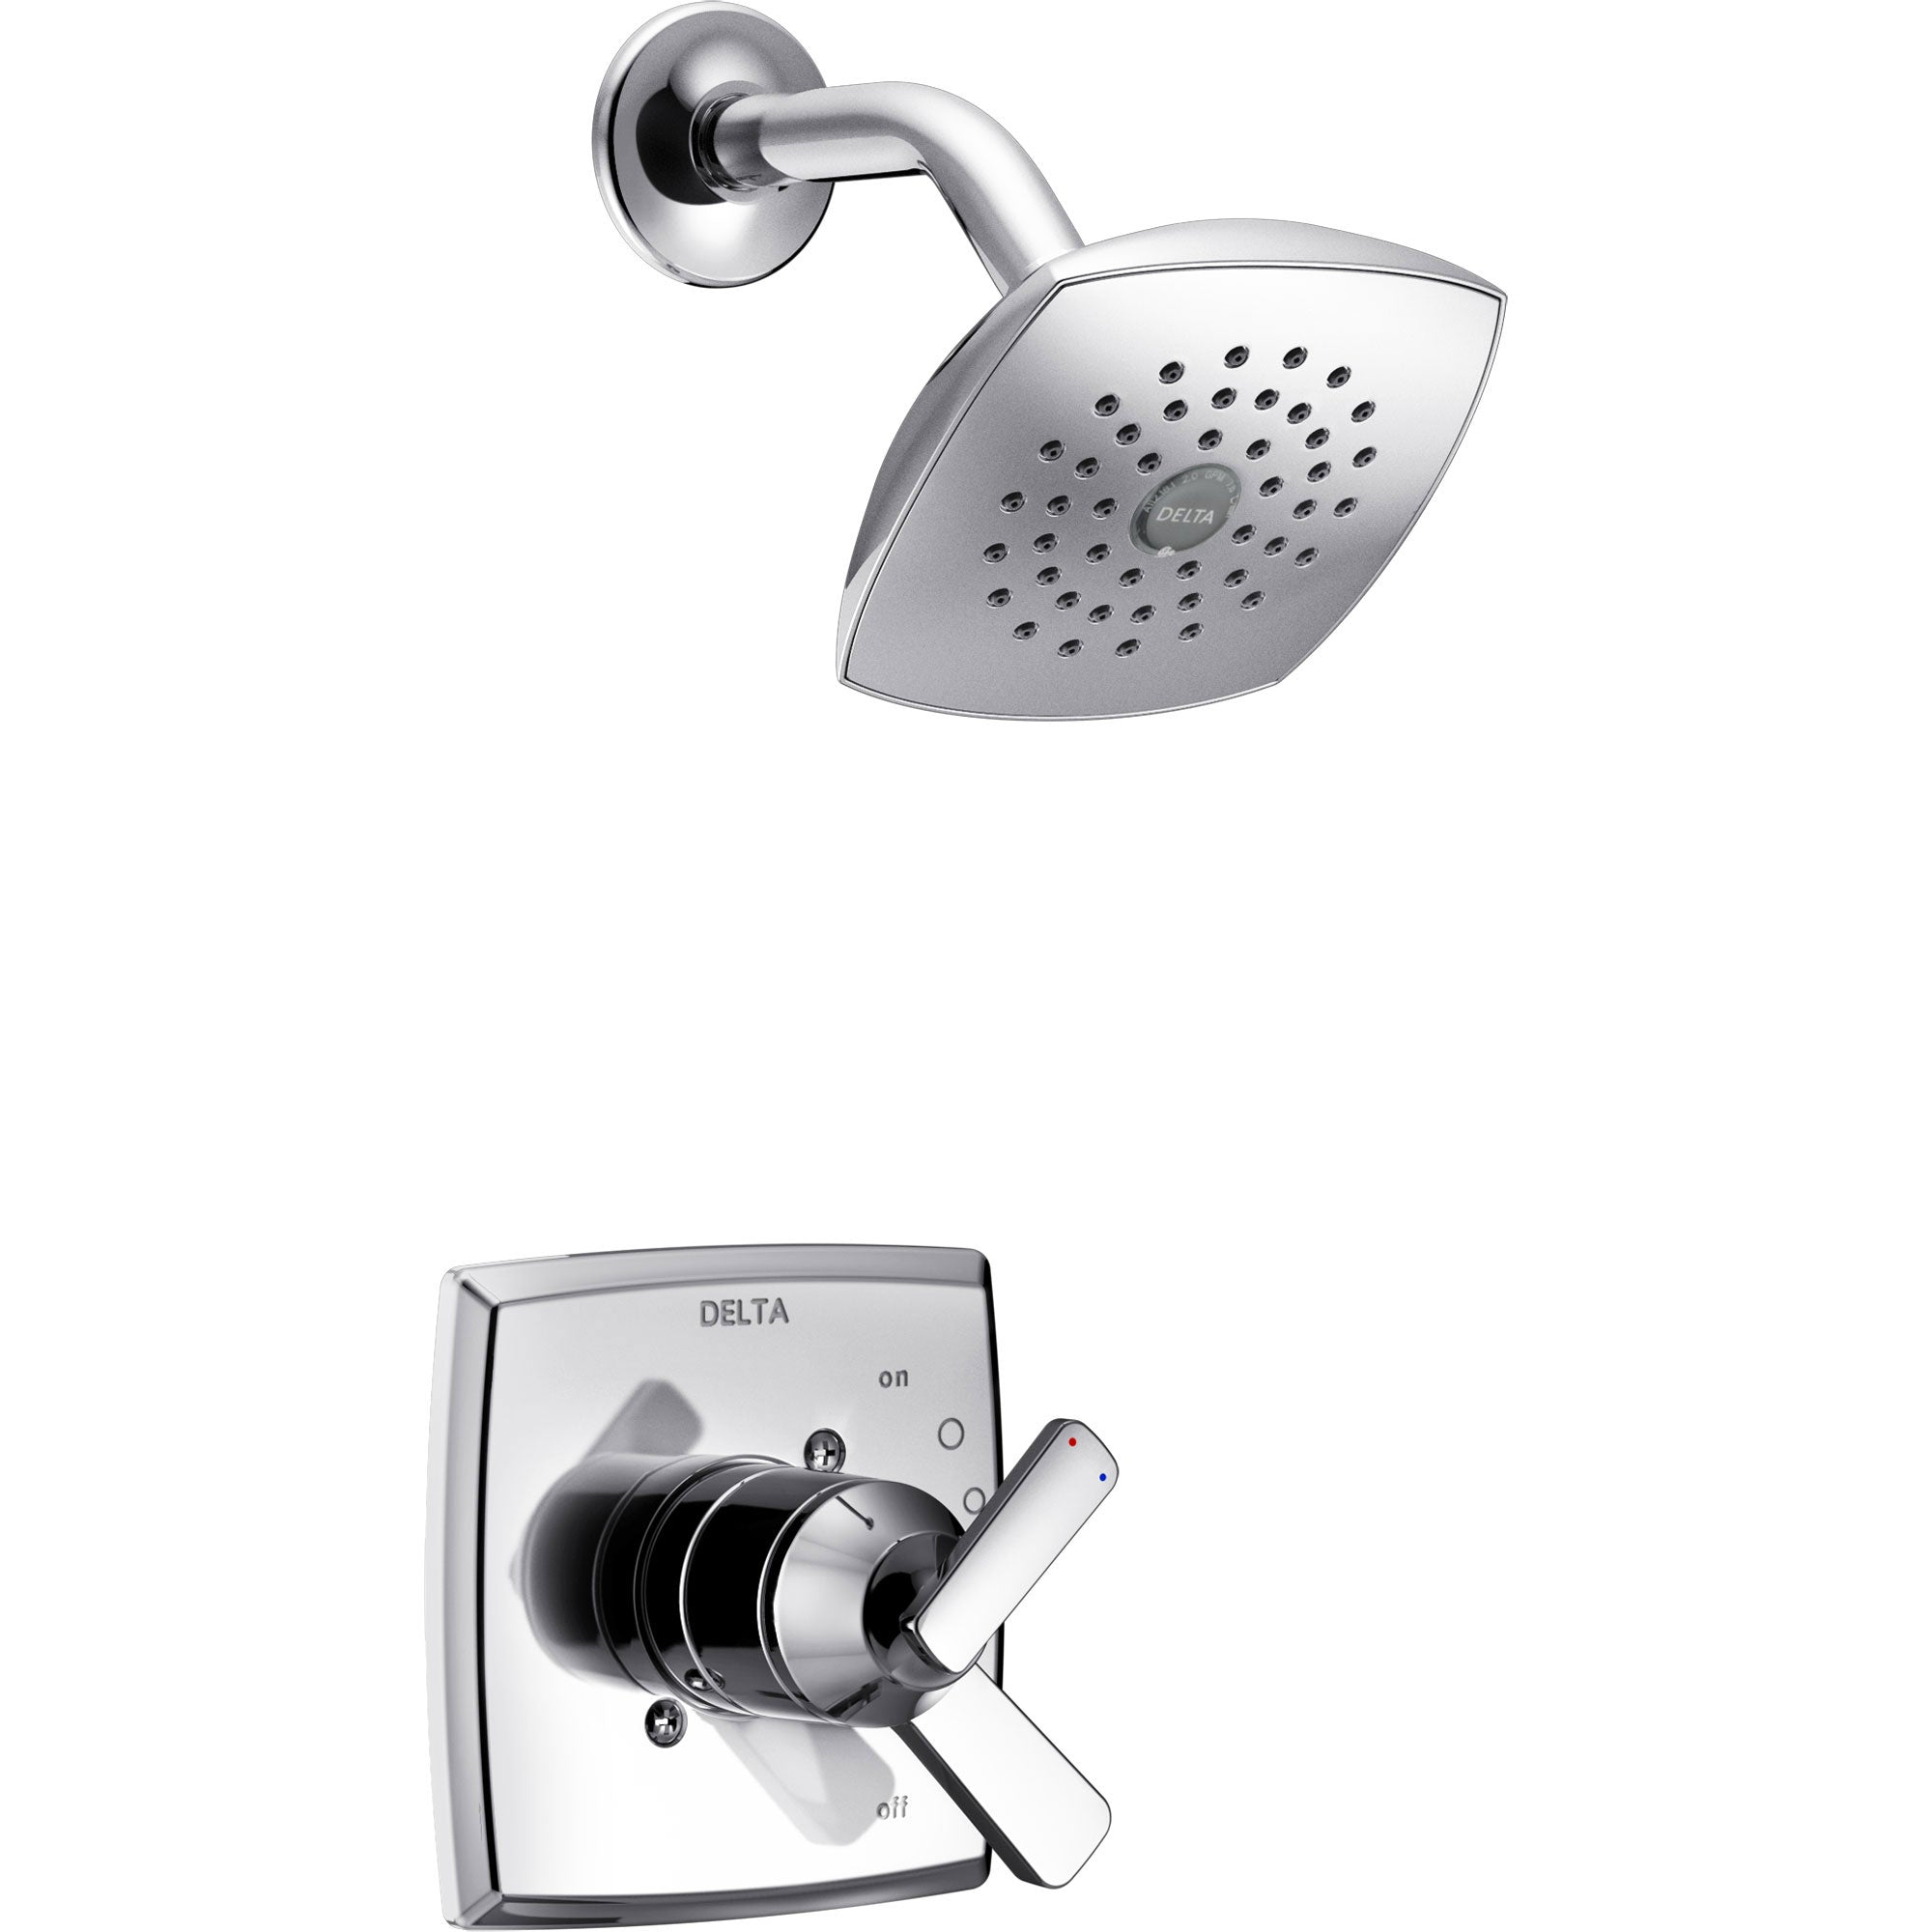 Delta Ashlyn Chrome Finish Monitor 17 Series Shower Only Faucet with Dual Temperature and Pressure Control INCLUDES Rough-in Valve with Stops D1143V